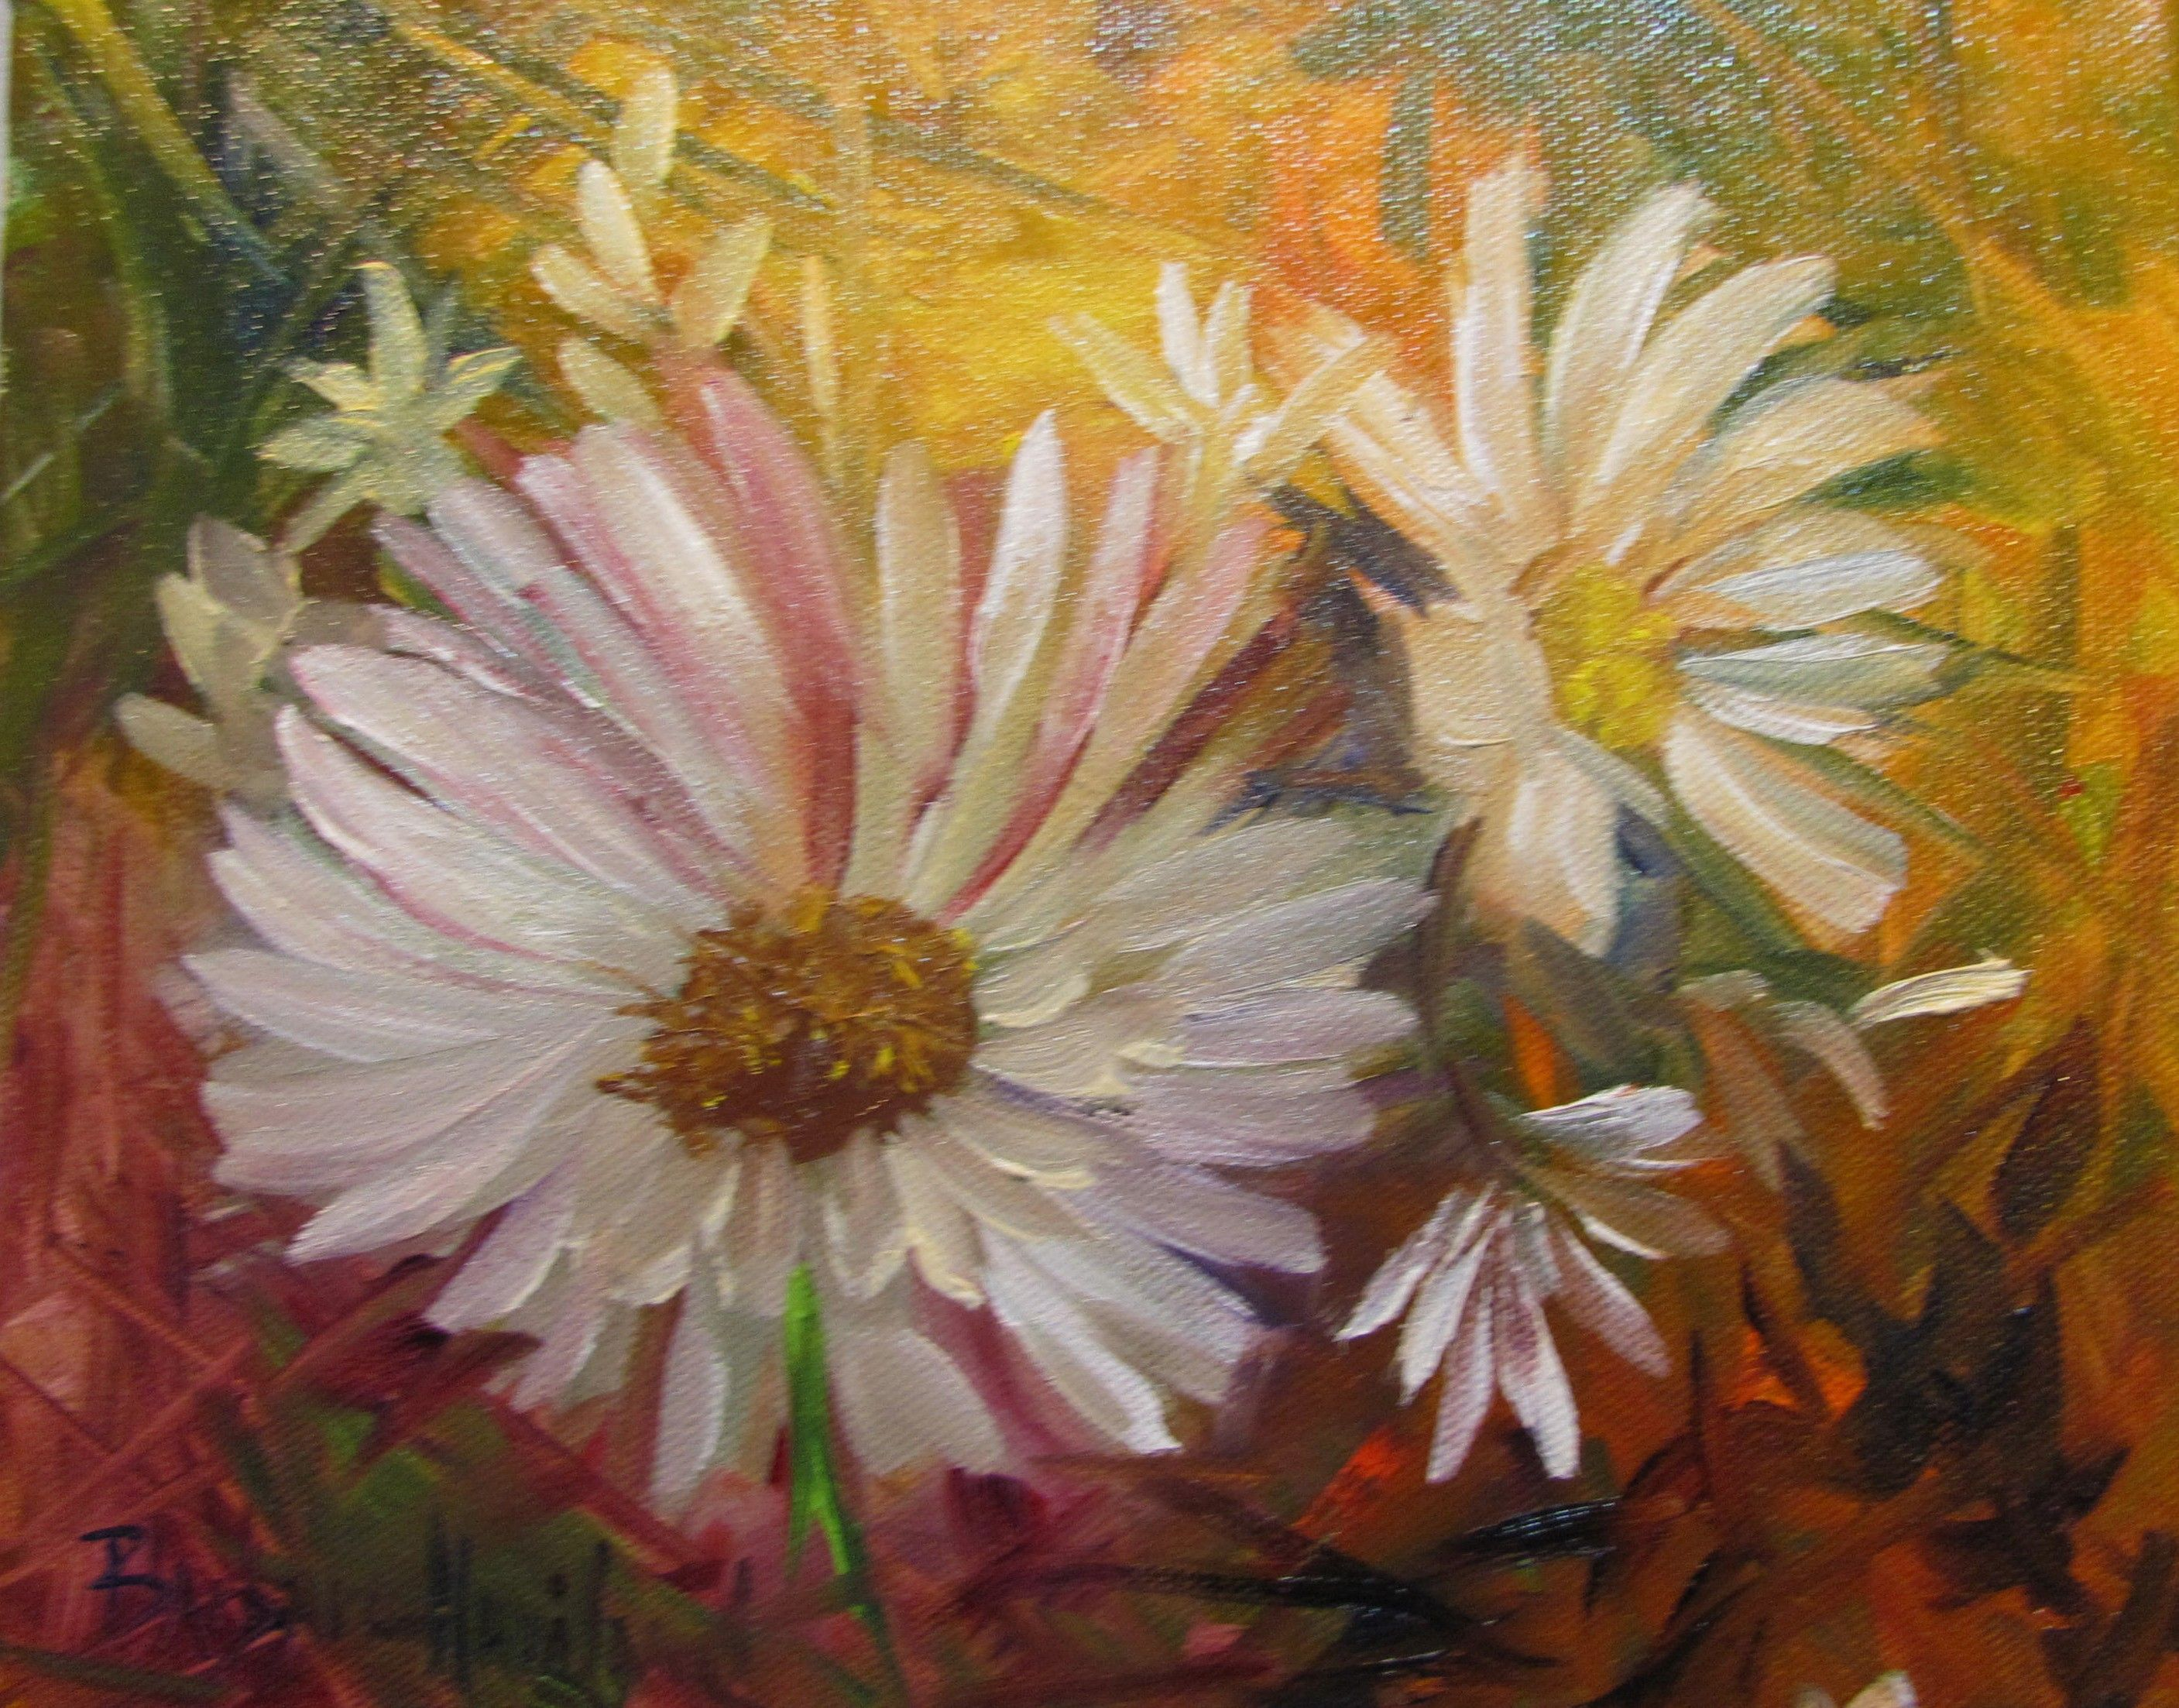 Daisies paintings originals for sale daisies by barbara daisies paintings originals for sale daisies by barbara haviland small oil izmirmasajfo Images